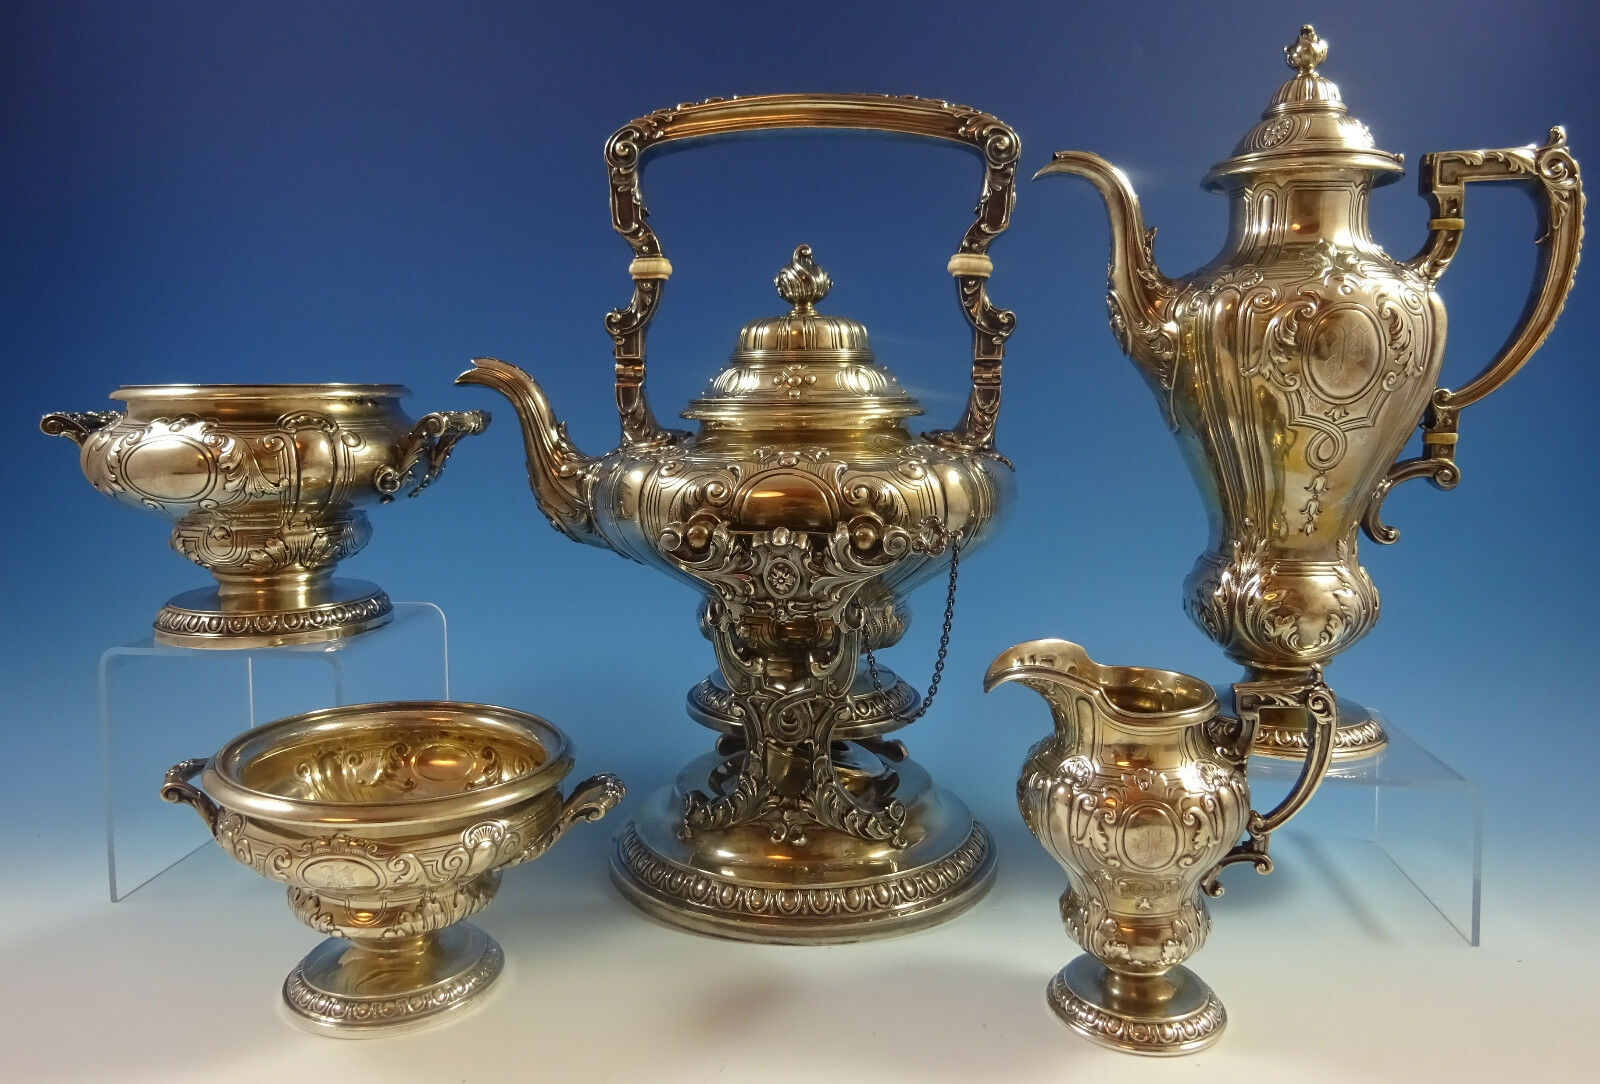 King George Gorham Sterling Silver Tea Set 5pc #1293